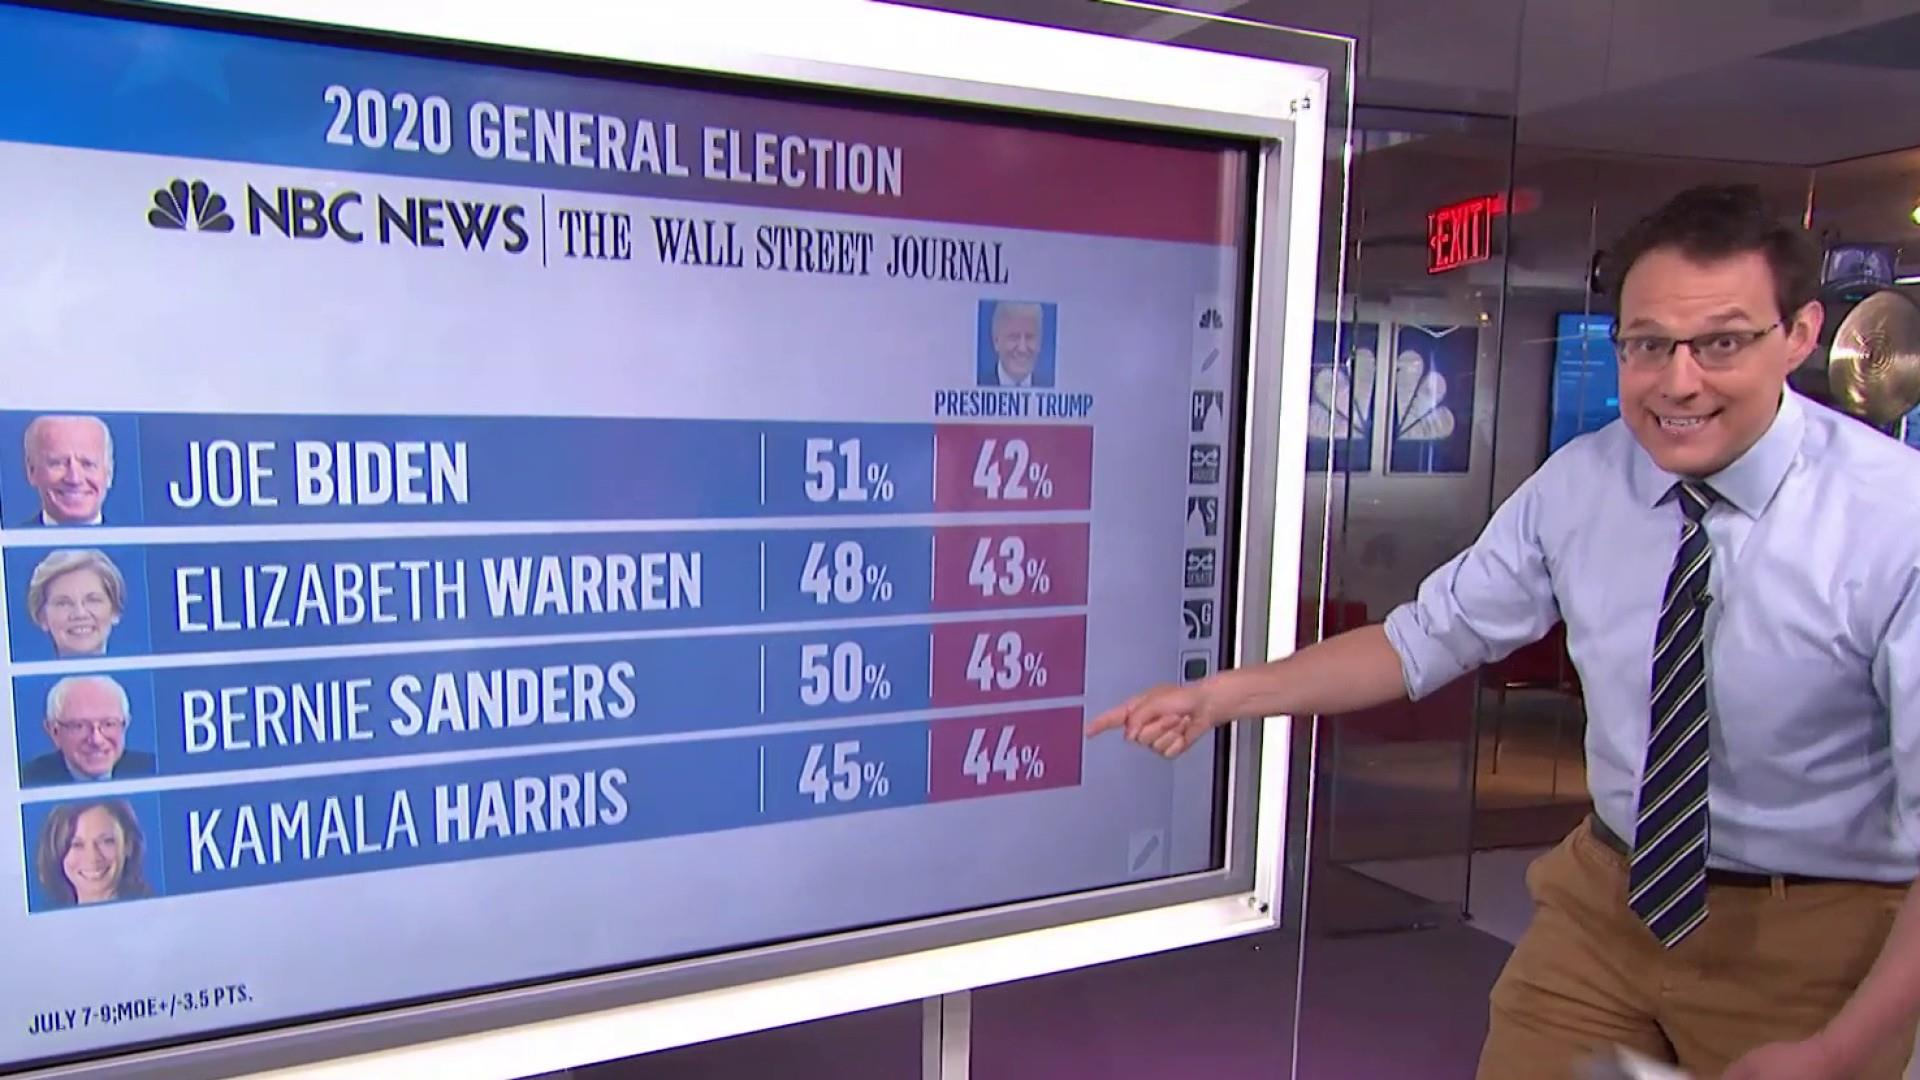 Biden, Warren, Sanders, Harris all beat Trump in new NBC/WSJ poll